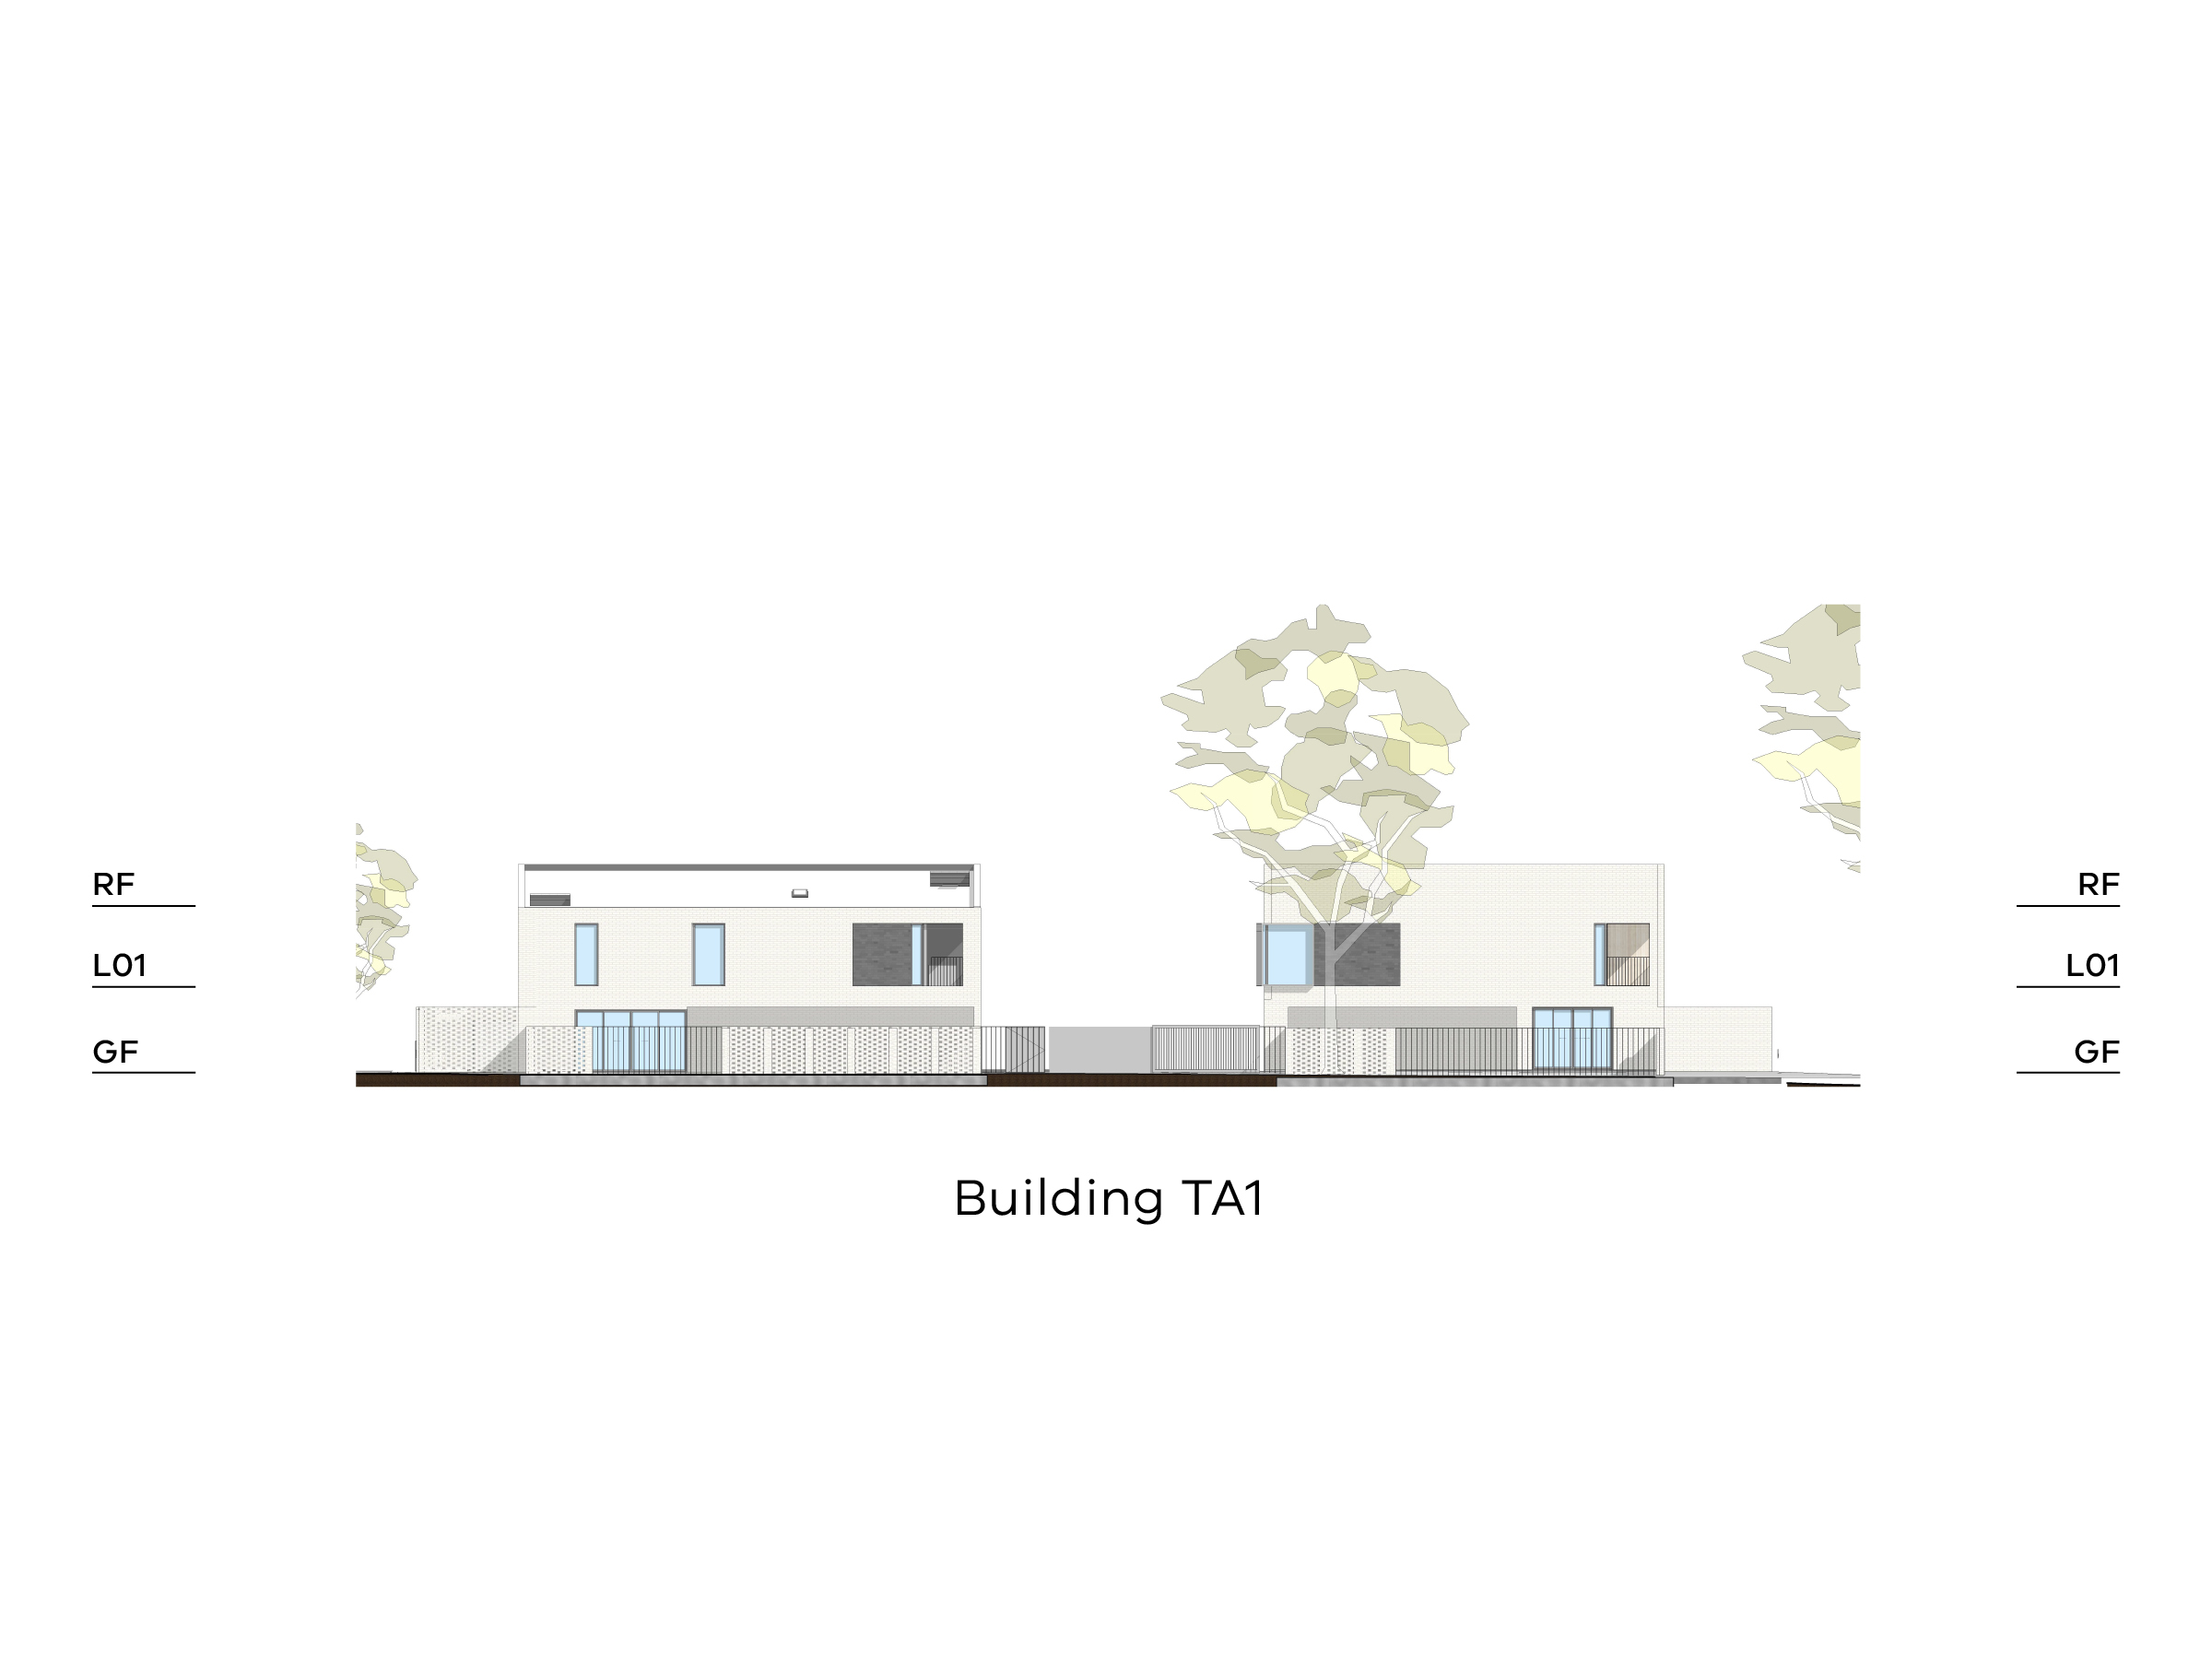 Diagram showing the height of building TA1 as seen from TarakanStreet. Building TA1 has a ground floor, a level 1 and a sloped roof.